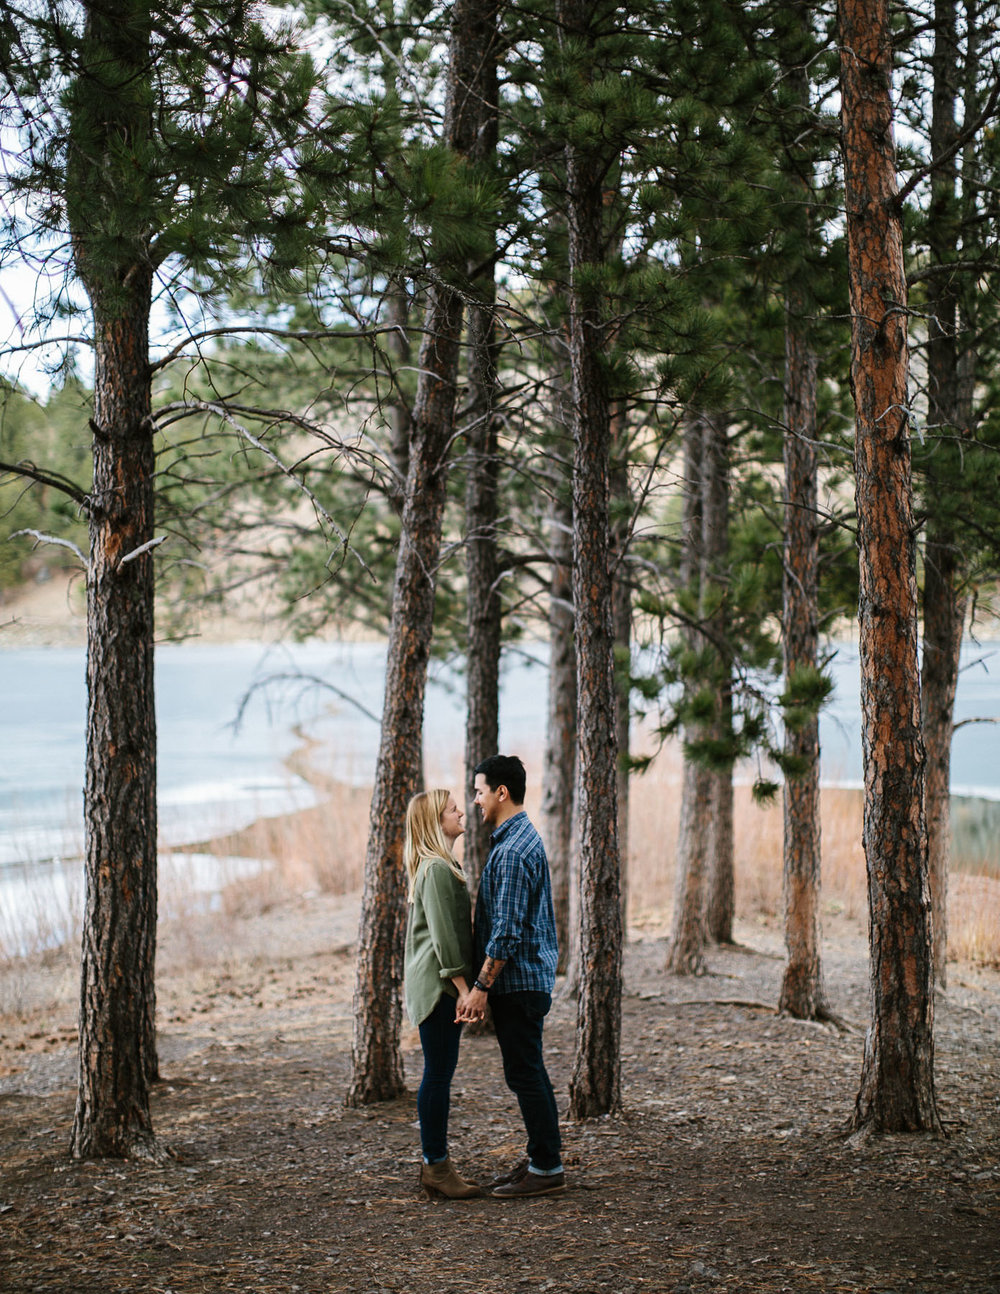 BlackHills_Adventure_Engagement_Session_Alcee&Stefan_01.jpg